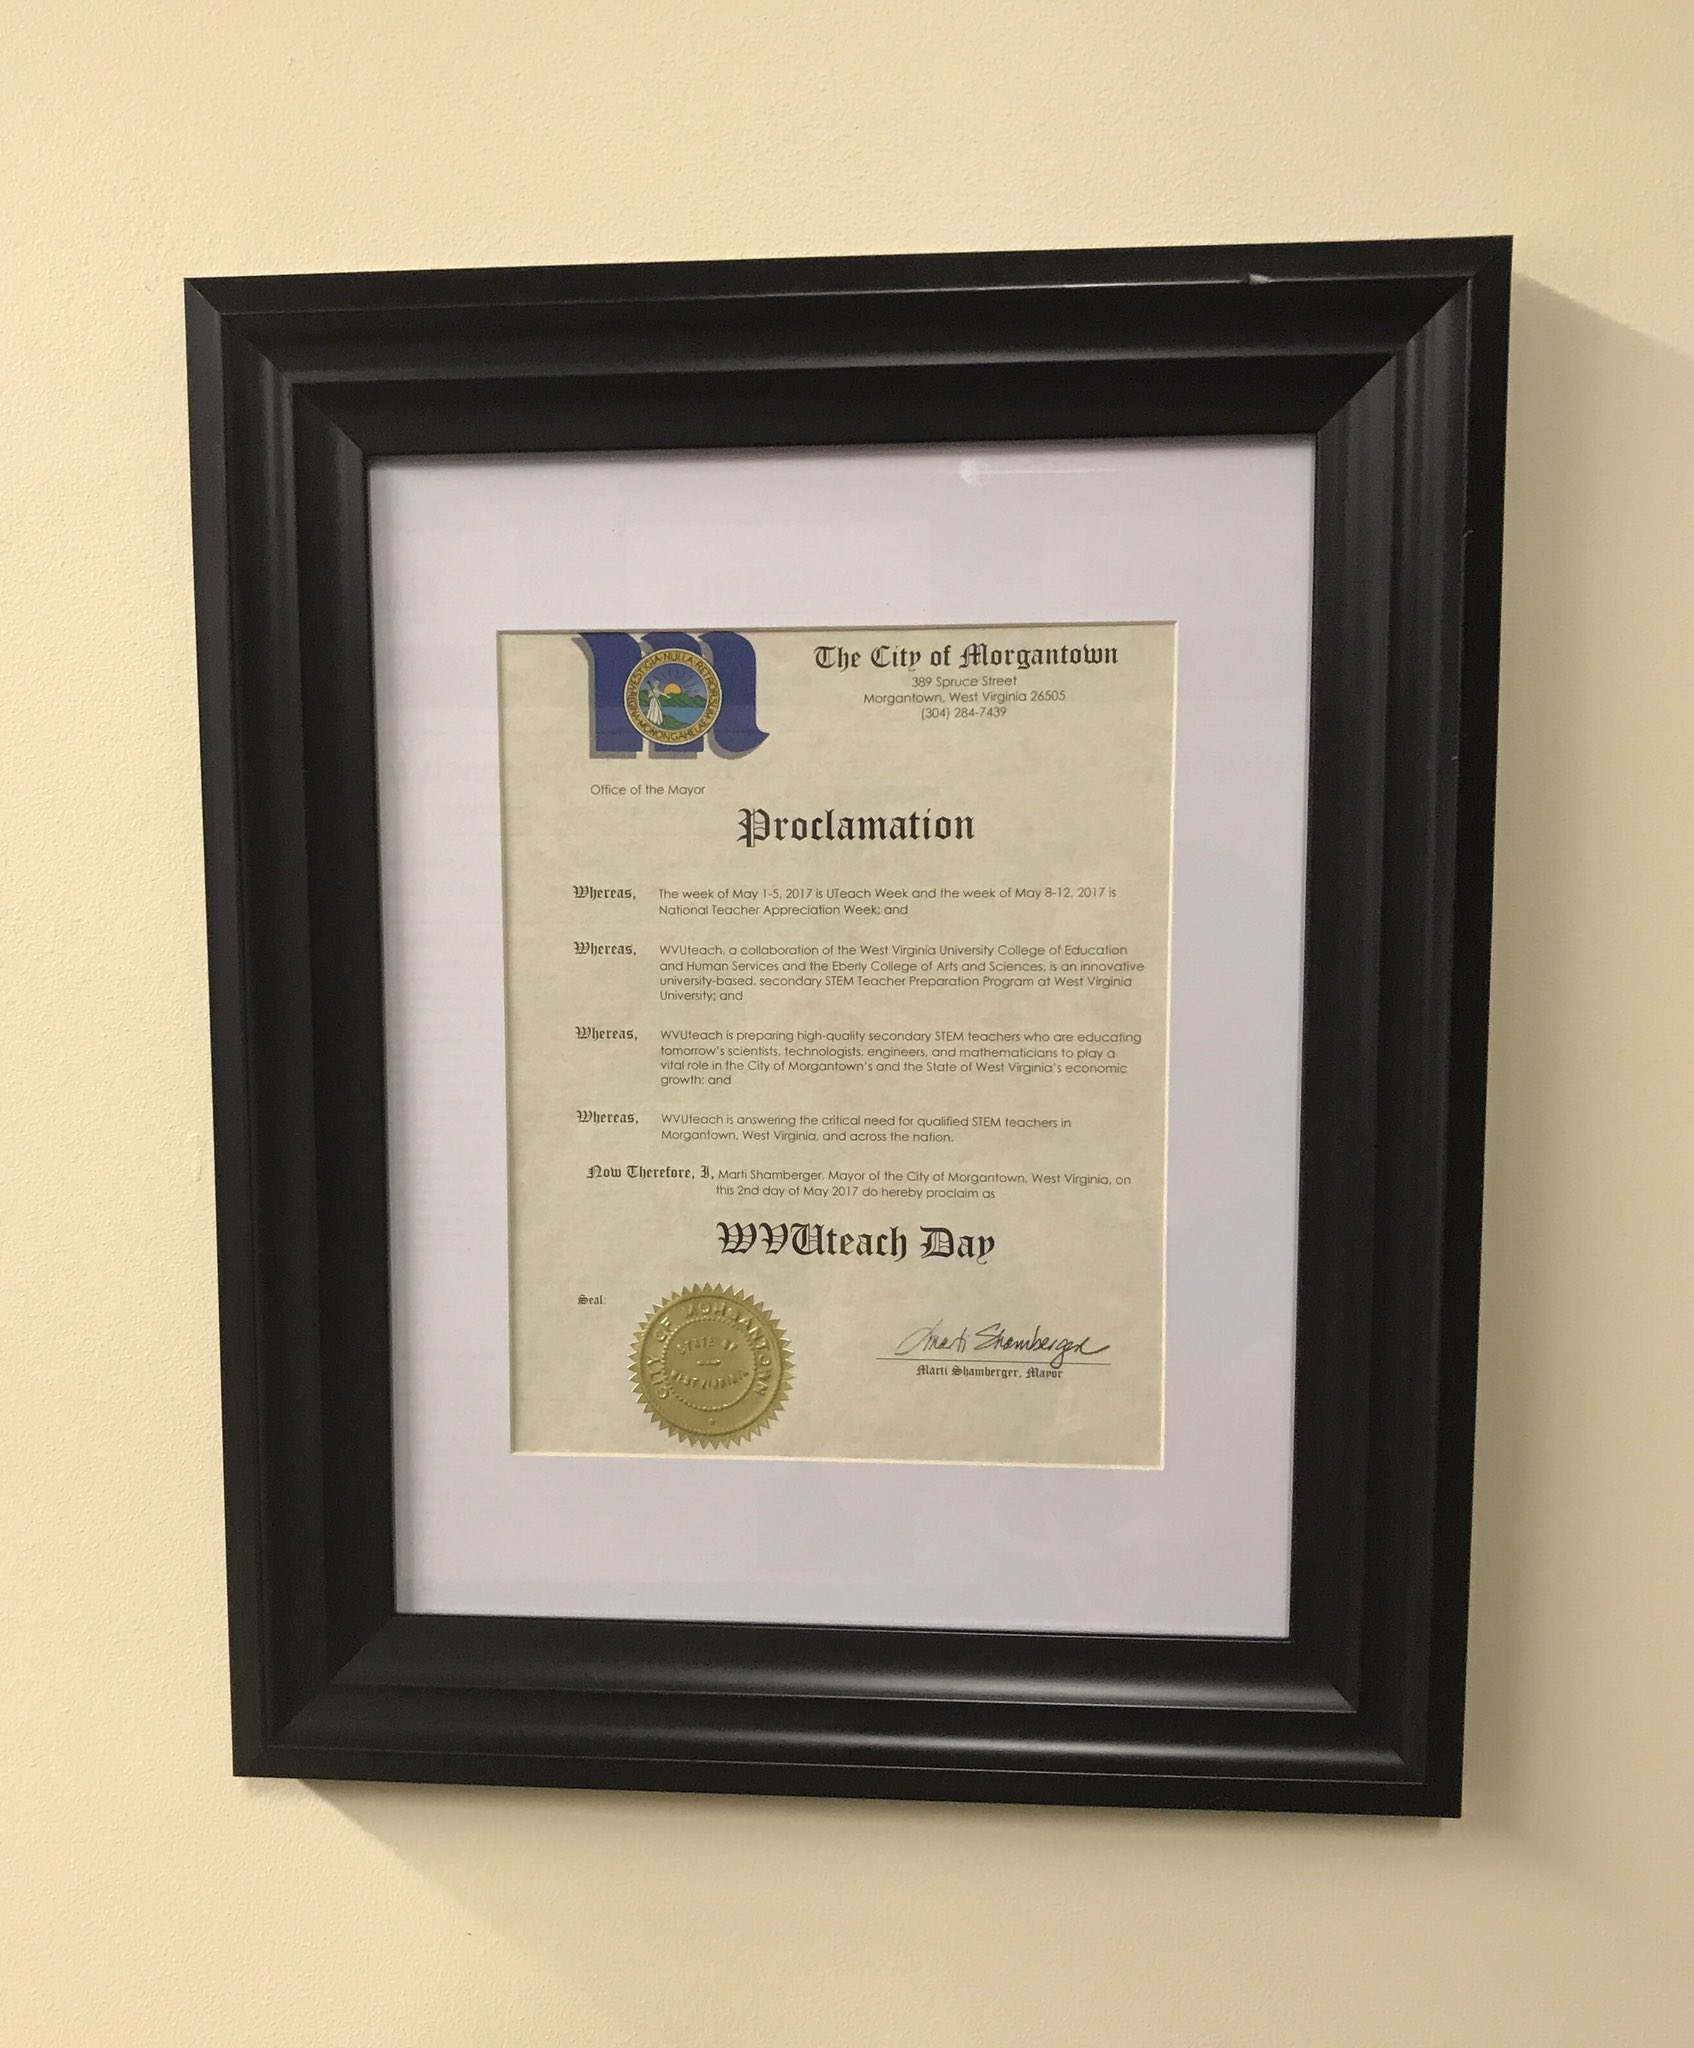 Proud to be WVUteach this morning after seeing the proclamation framed and hung at the WVUteach House! https://t.co/38Klr0SQxn